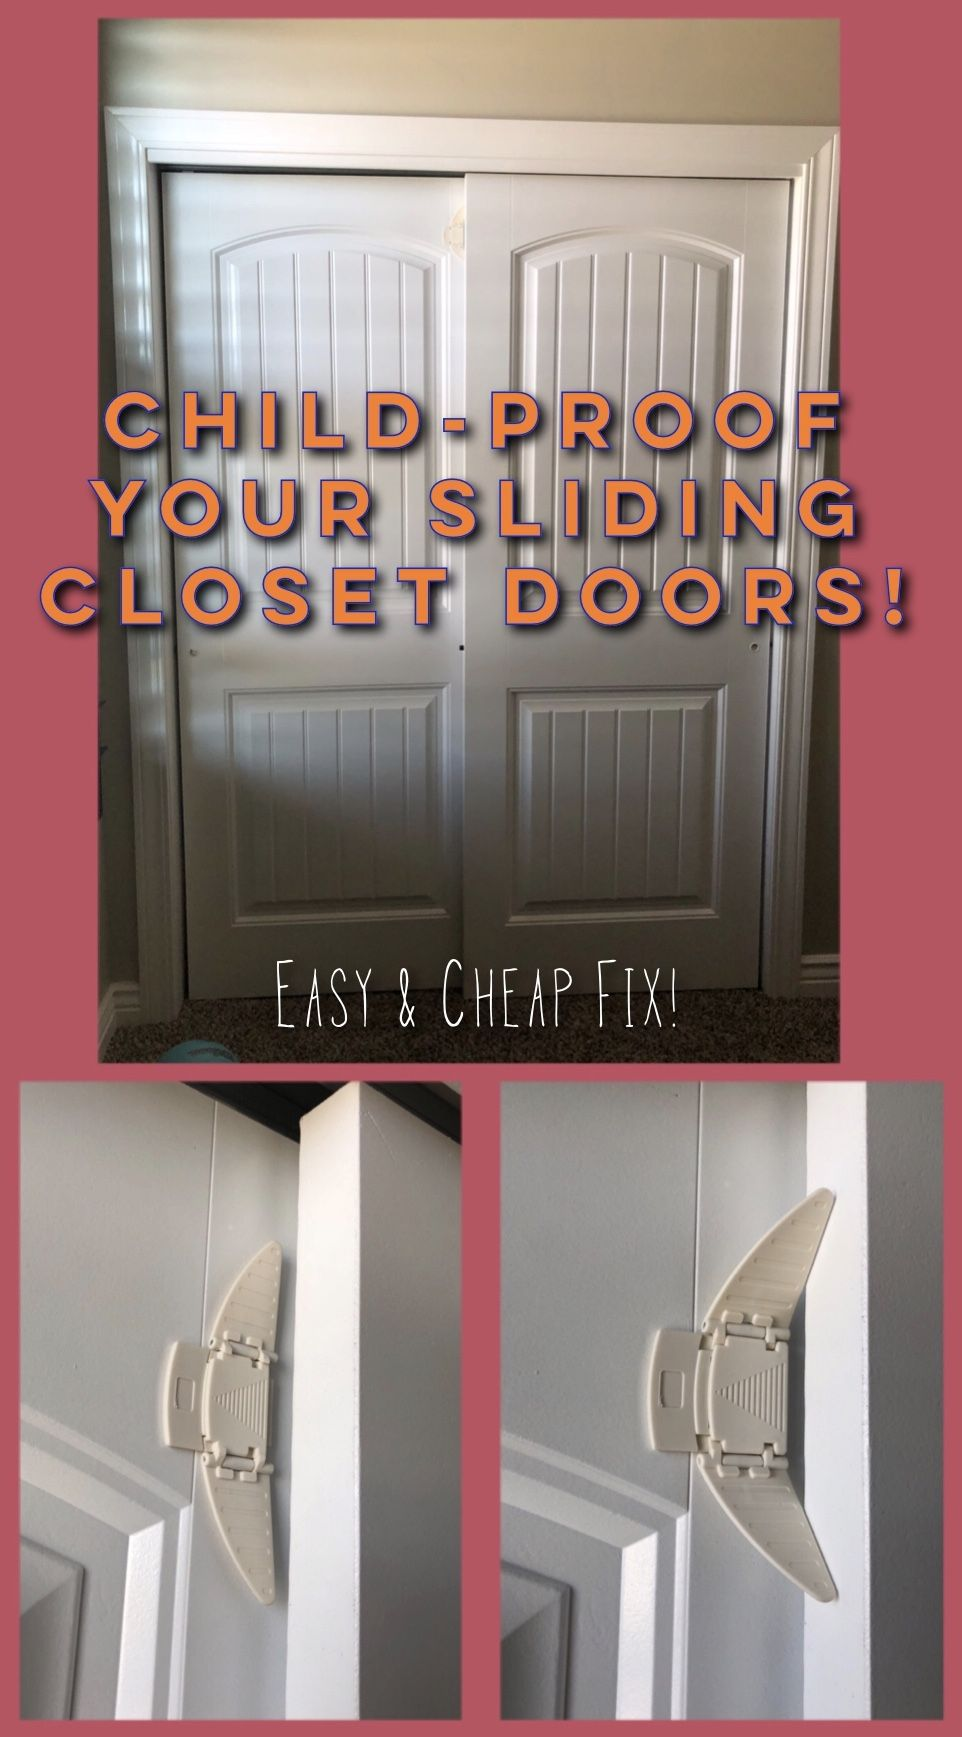 Easy And Cheap Way To Baby Child Proof Sliding Closet Doors In The Bedroom Or Rest Of Home Child Proof Closet Doors Sliding Closet Doors Sliding Cabinet Doors